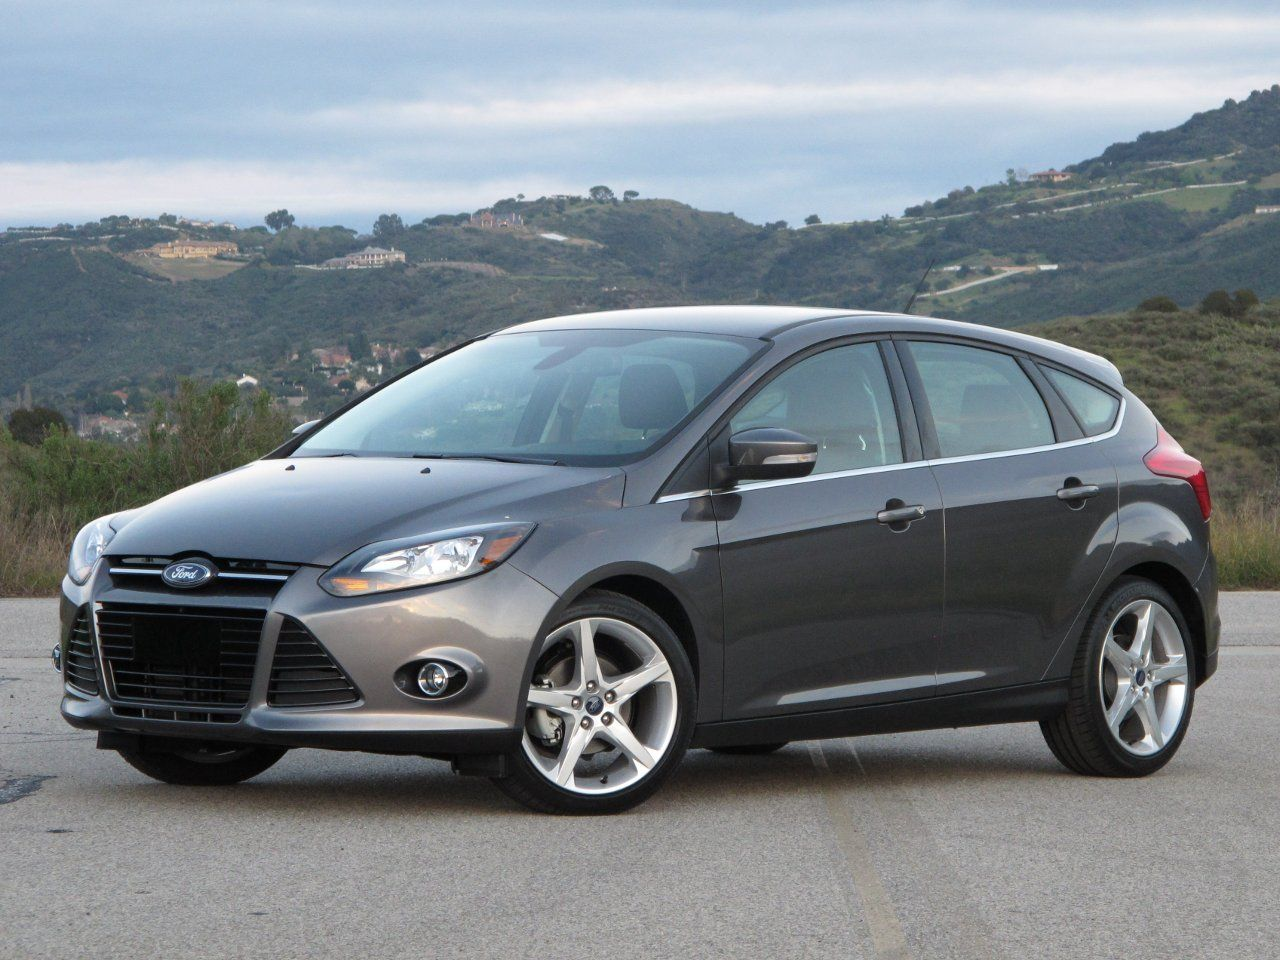 2012 Ford Focus Hatchback Ford Focus Hatchback Ford Focus